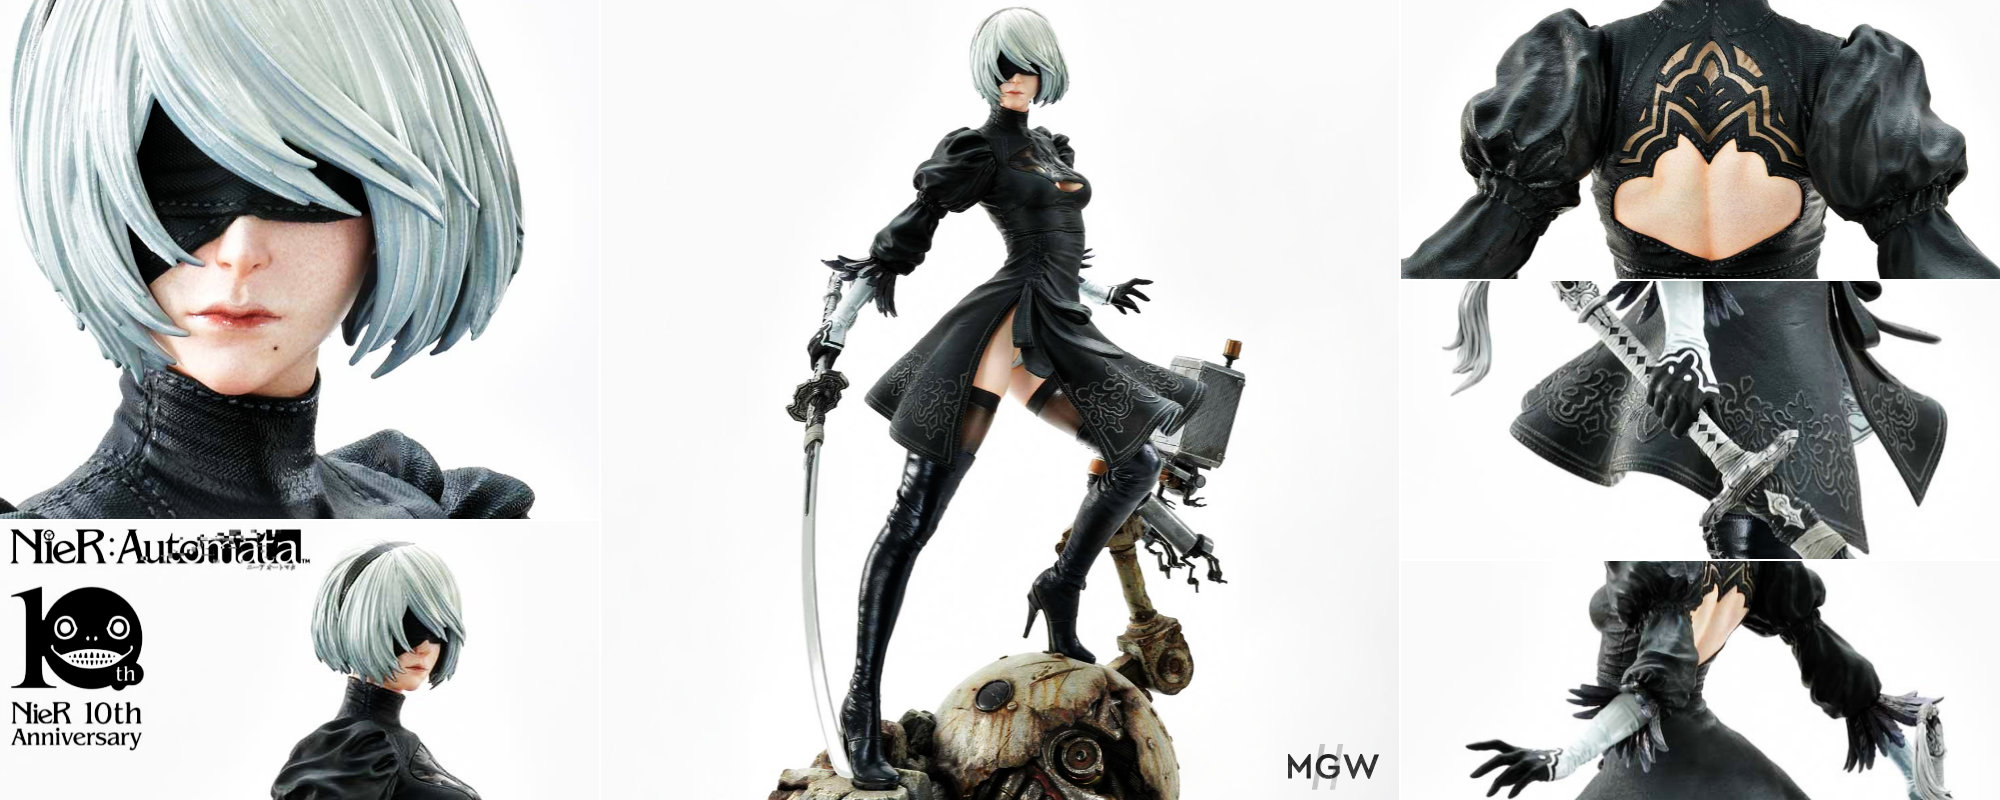 SQUARE ENIX MASTERLINE NieR Automata YoRHa No.2 Type B 2B by Prime1Studio MyGrailWatch Anime Figure Guide